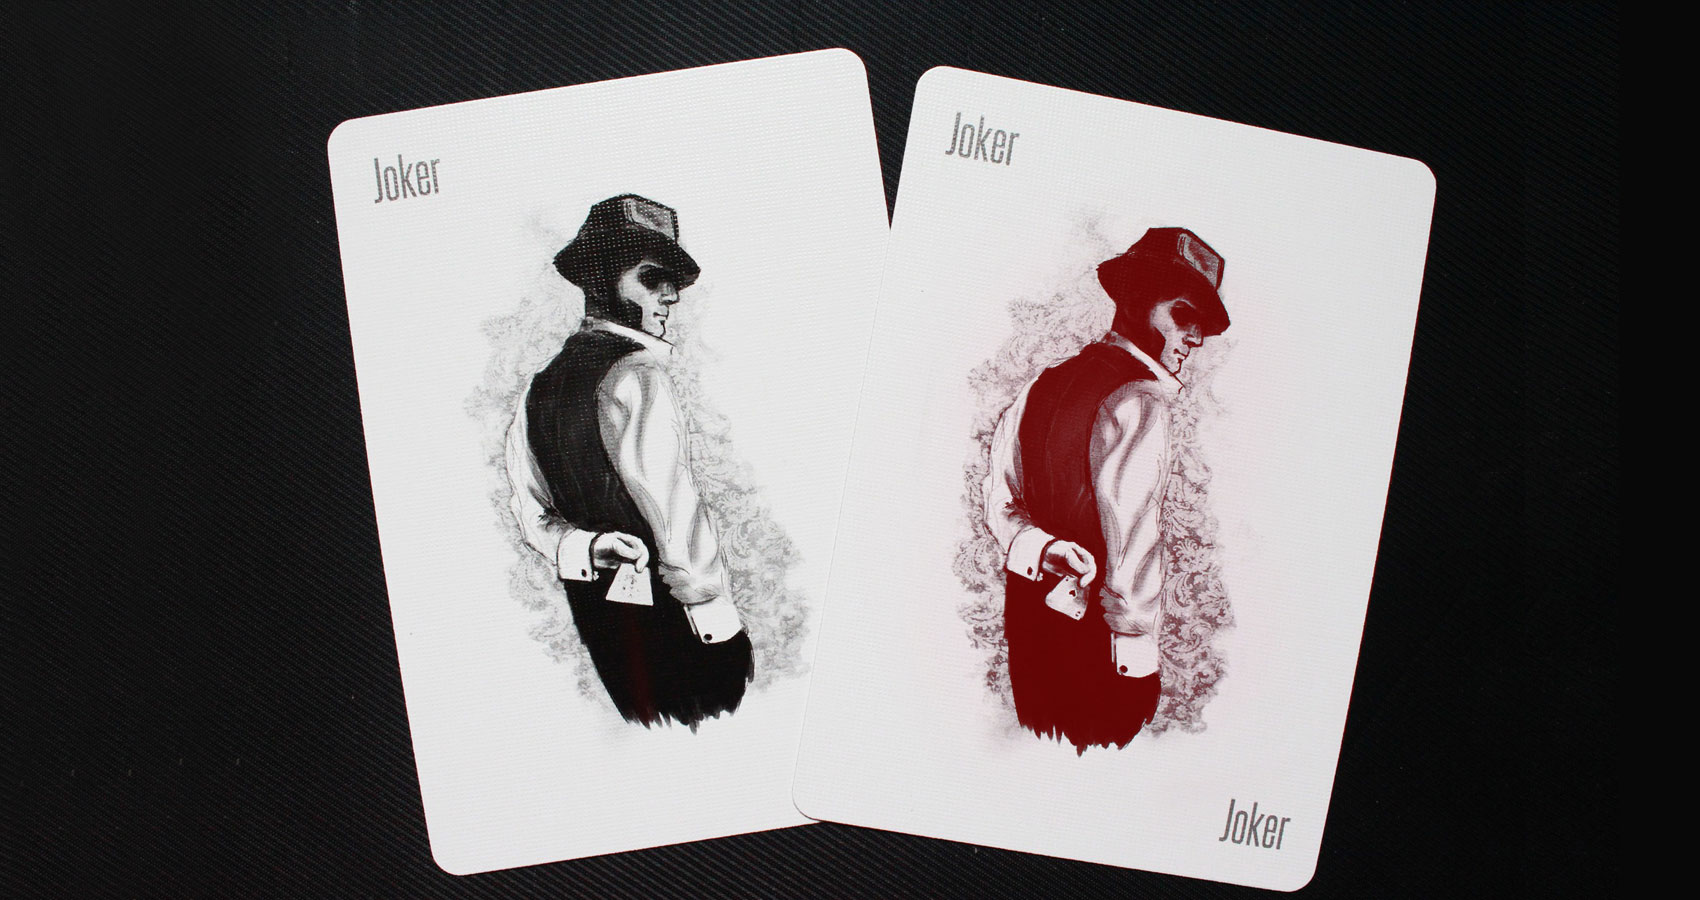 JOKER IN THE PACK by Dilip Mohapatra at Spillwords.com